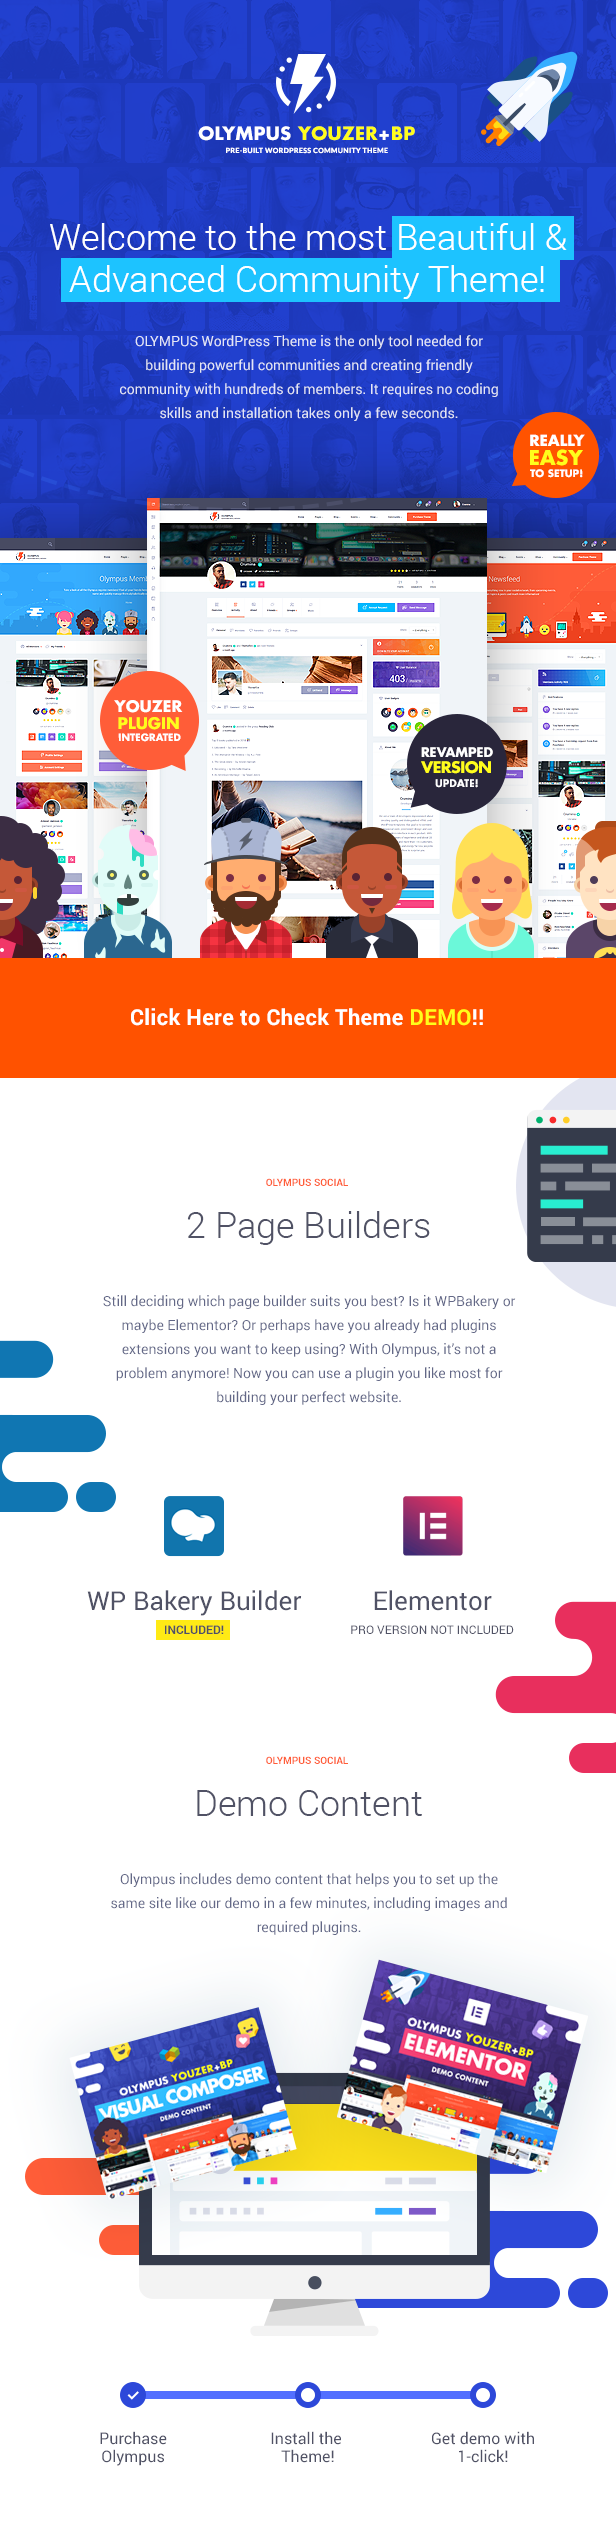 Welcome to the most Beautiful & Advanced Social WP Theme!